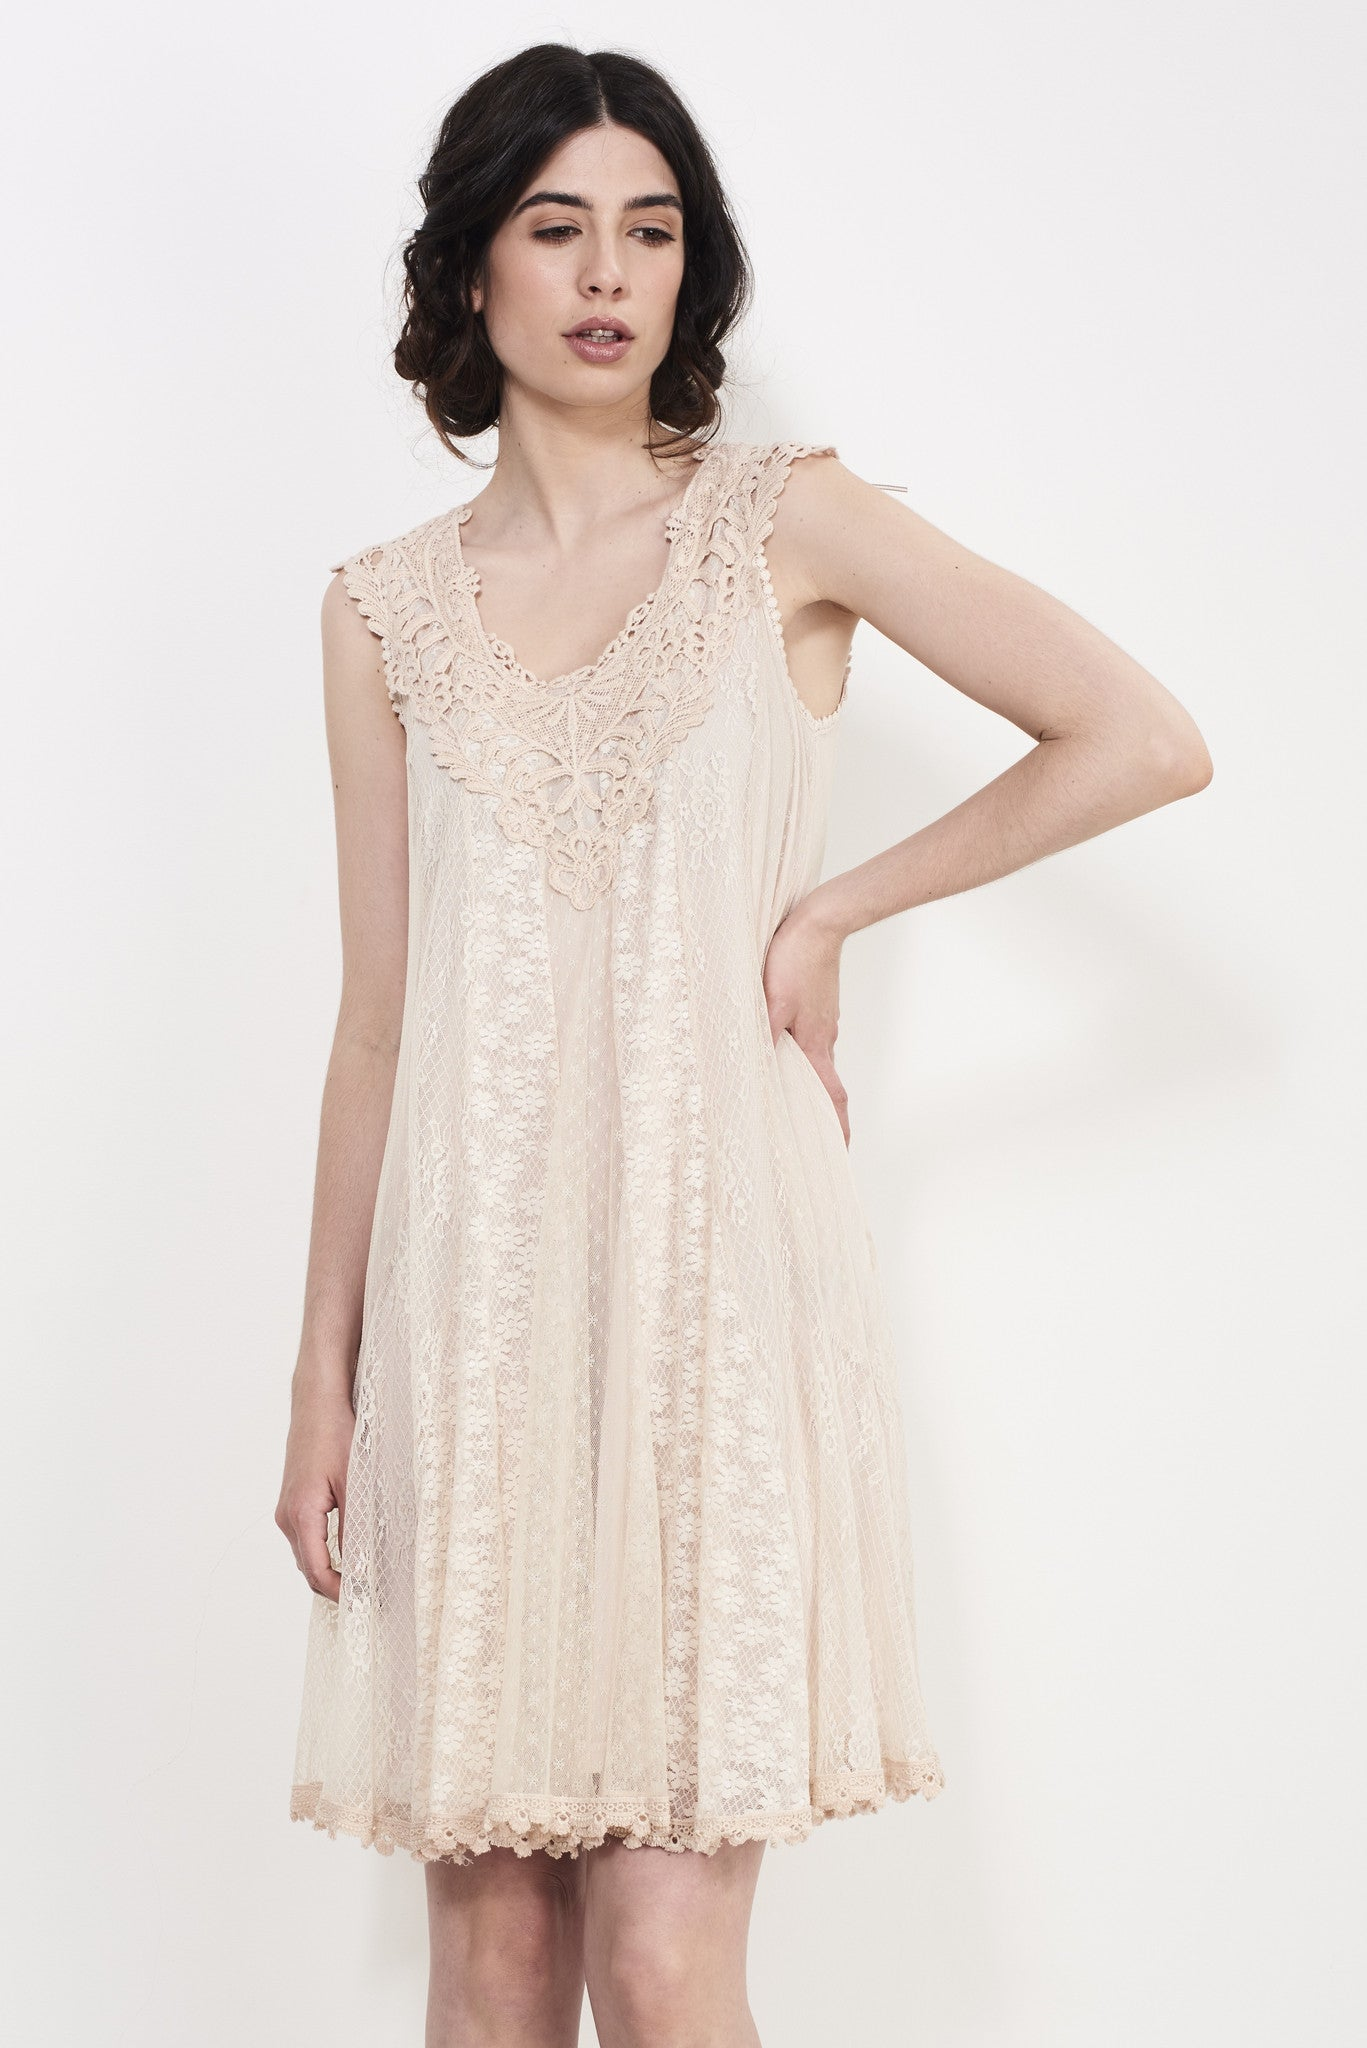 COMBO LACE DRESS - Darccy & Soma London